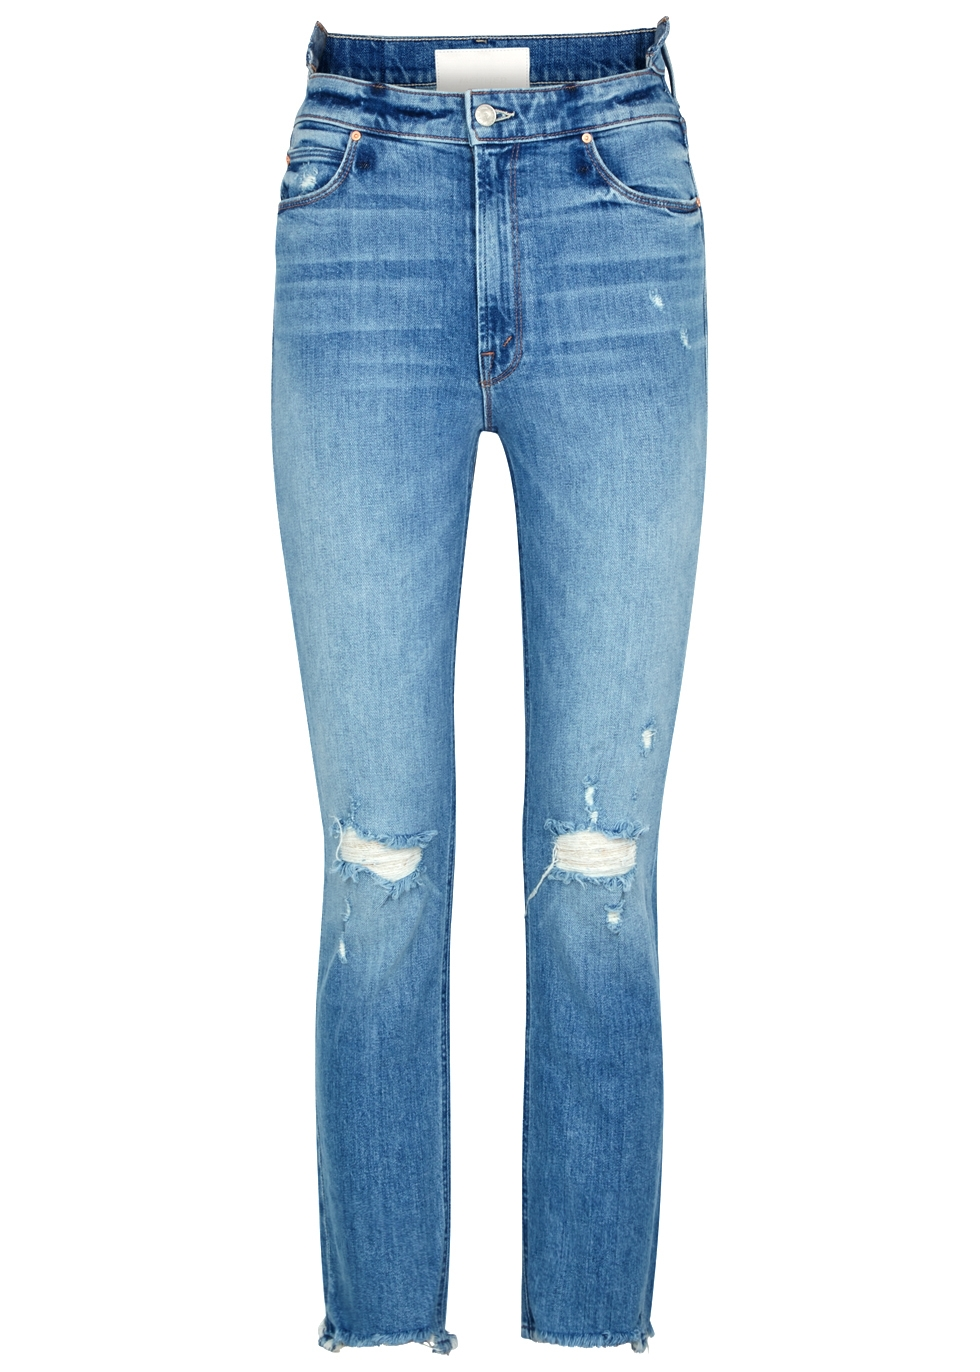 THE DAZZLER DISTRESSED SKINNY JEANS